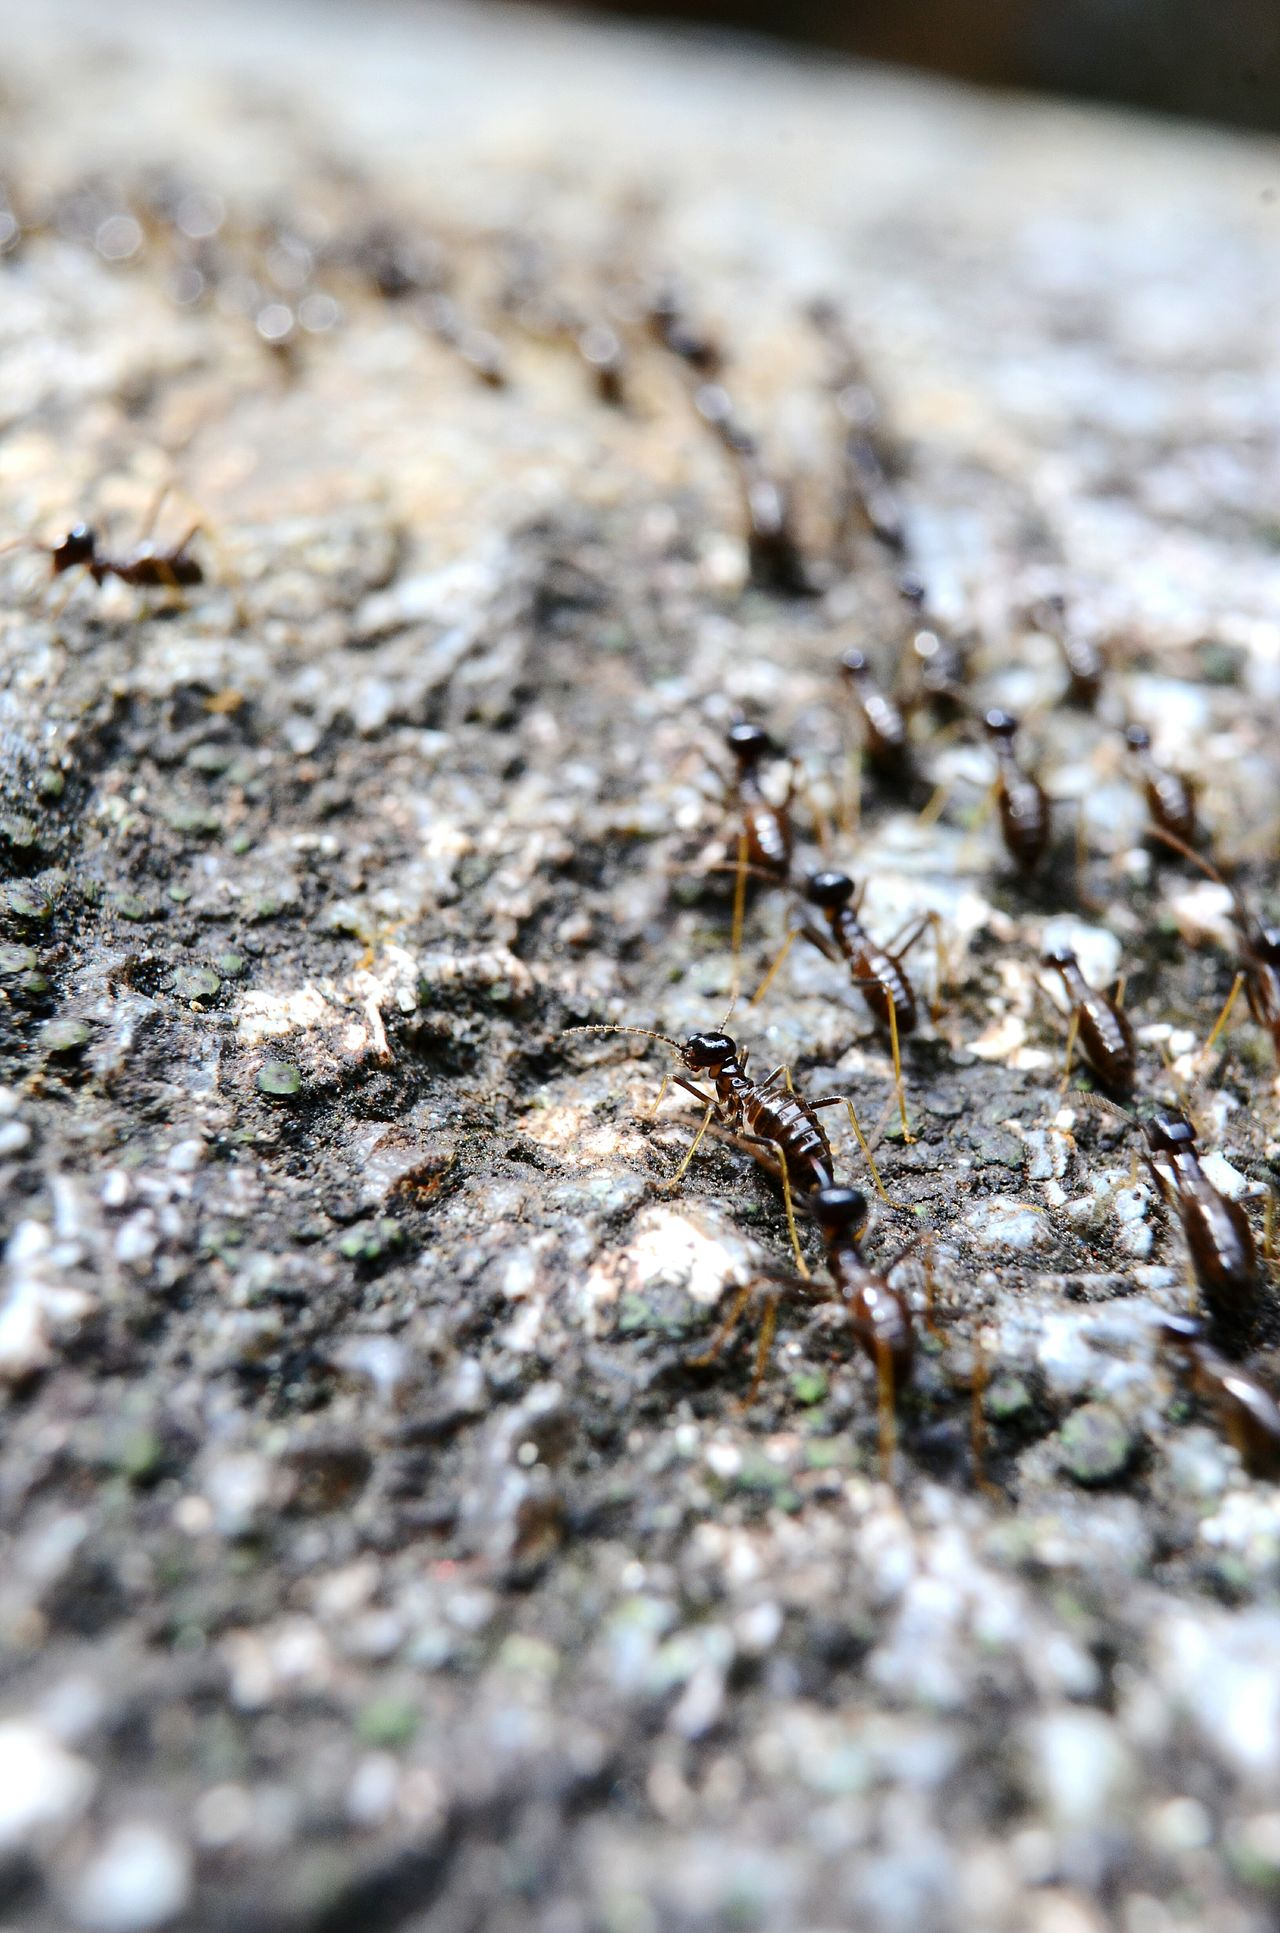 Ant Animal Themes Insect Animals In The Wild Colony Animal Wildlife Outdoors Large Group Of Animals Nature Close-up Day No People Group Of Animals Insects  Ants Beautiful ♥ Cats 🐱 Plants 🌱 TreePorn Deadwood  Trees Tree Trunk Naturelovers Nature Photography Nature_collection